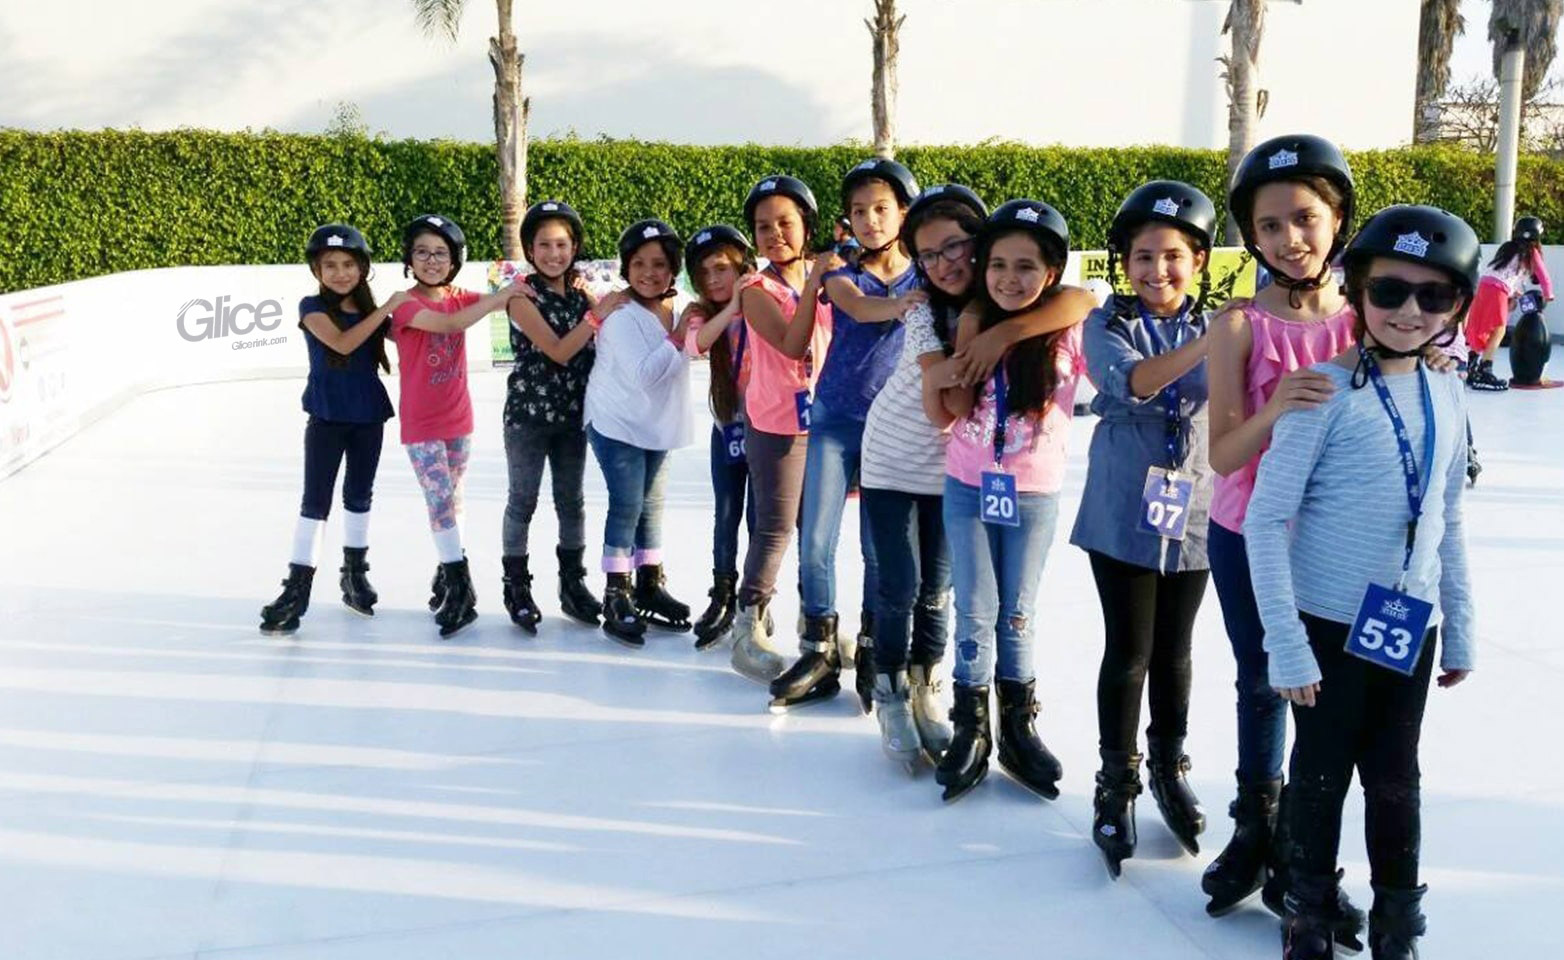 Girls on an artificial ice leisure rink in Lima, Peru